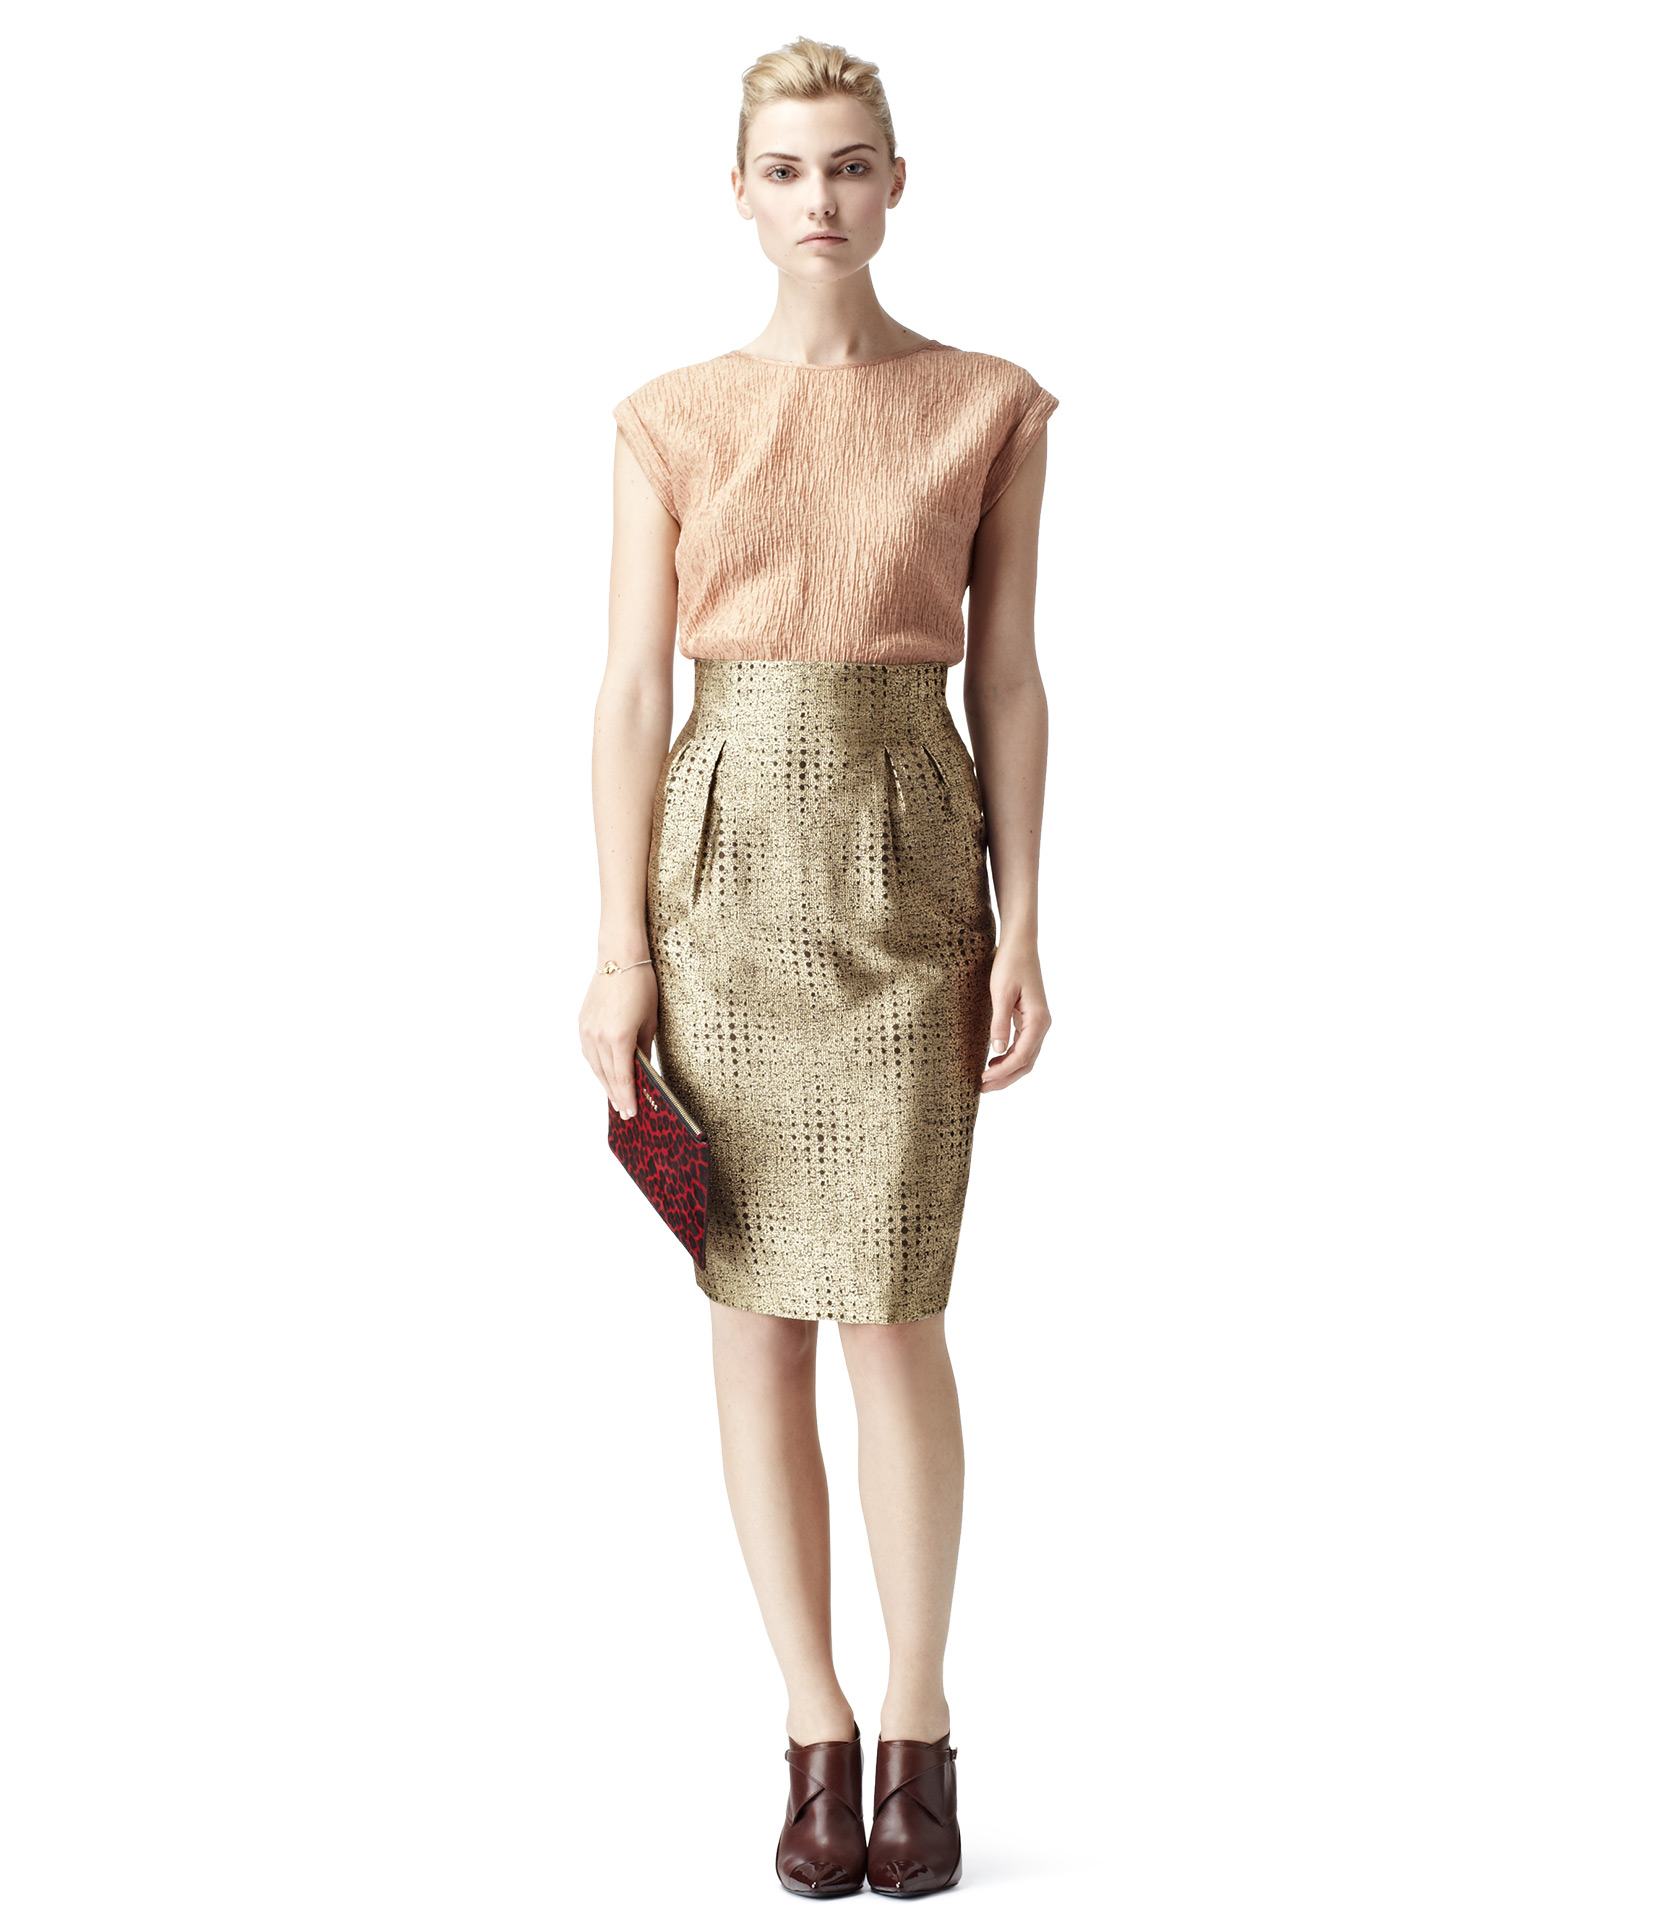 ef1e4f569 Reiss Inverted Pleat Pencil Skirt in Metallic - Lyst